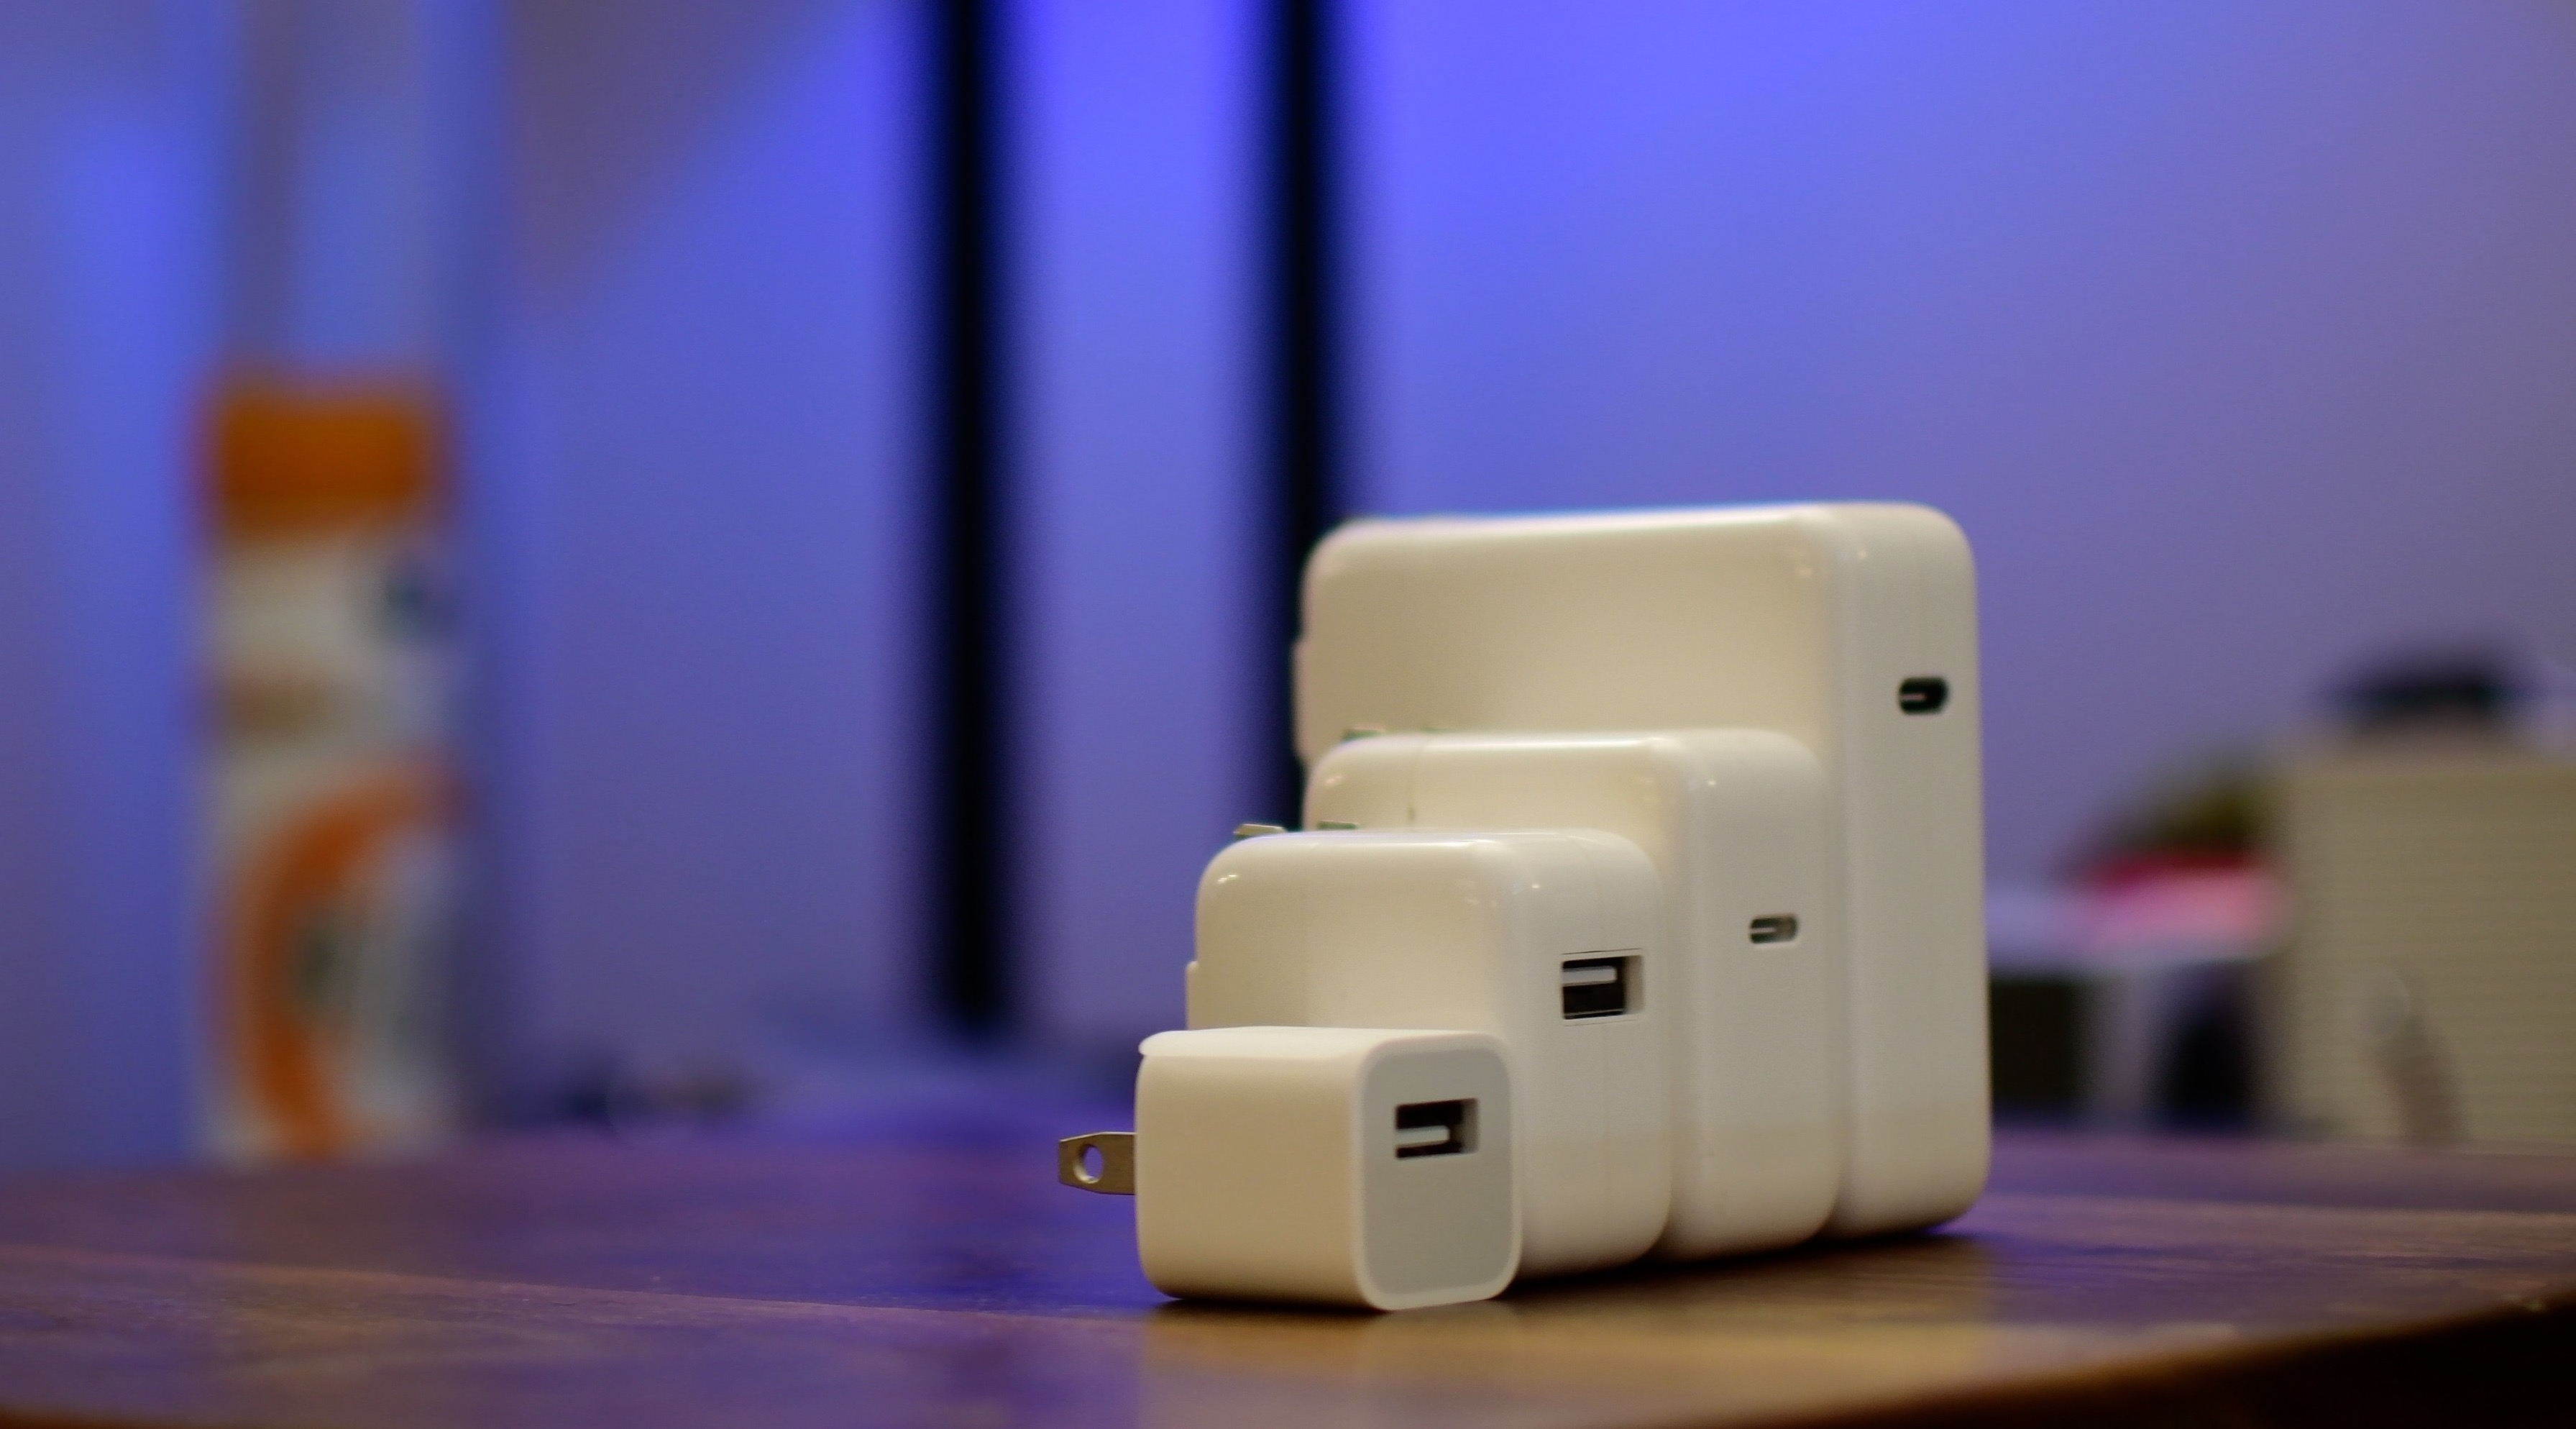 iPhone fast charge teaser image showing Apple USB power adapters and USB-C chargers